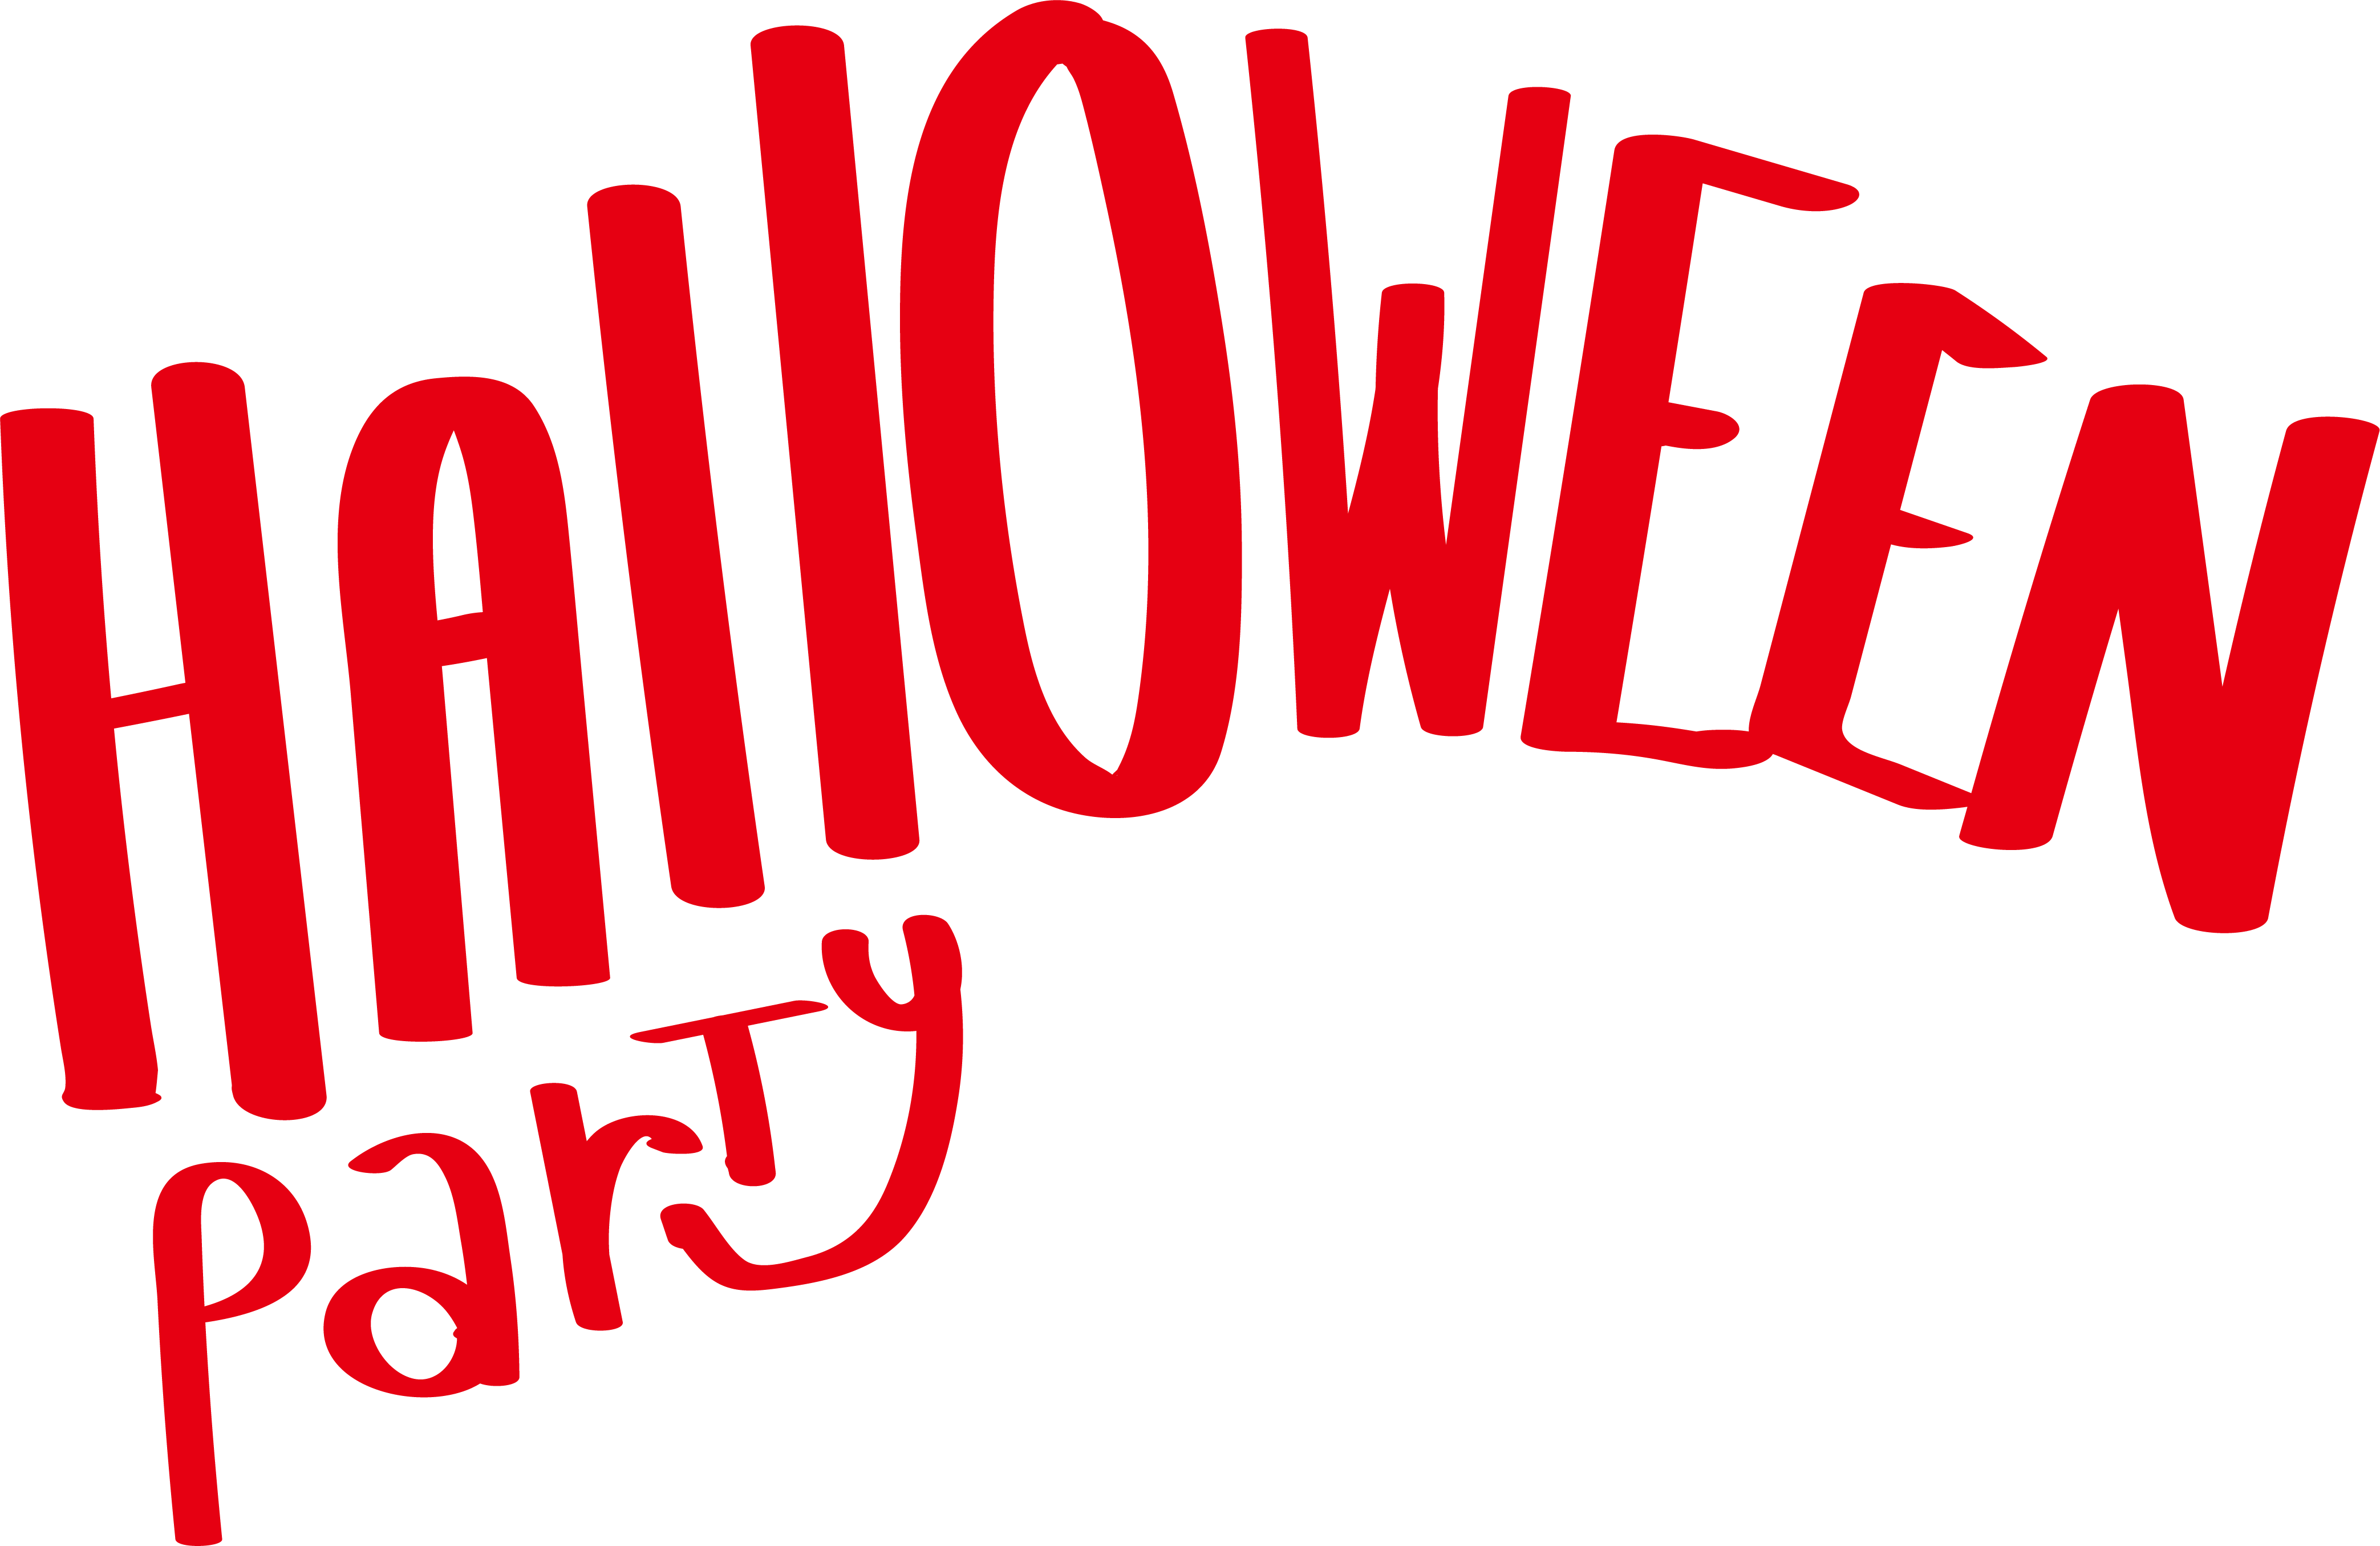 Party word png. Halloween microsoft clip art